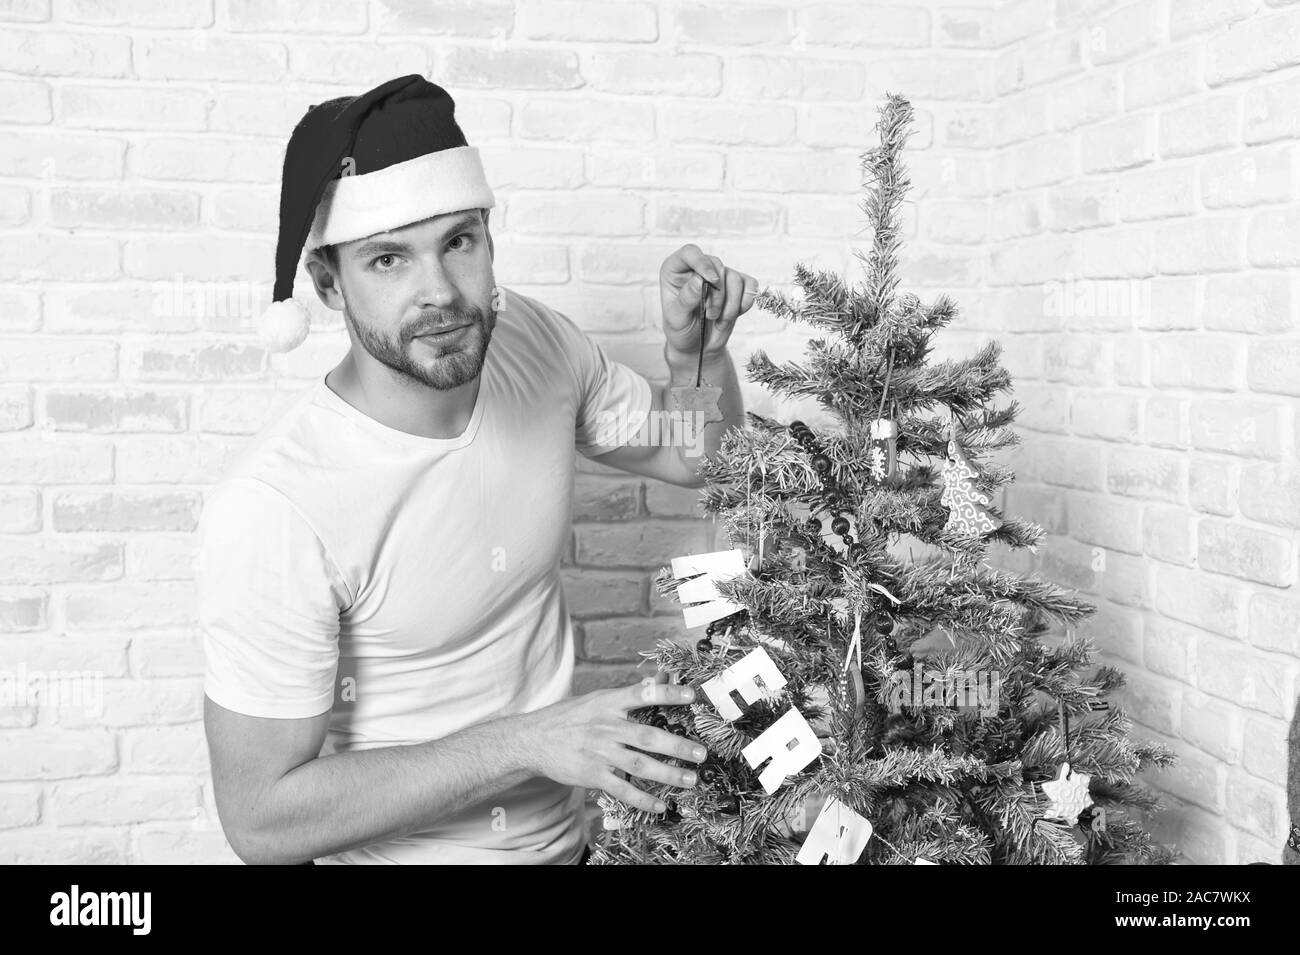 Winter holidays preparation and celebration. Man santa decorate Christmas tree with gingerbread star cookie. Homemade dessert, decoration and ornament. Merry xmas and happy new year. Stock Photo